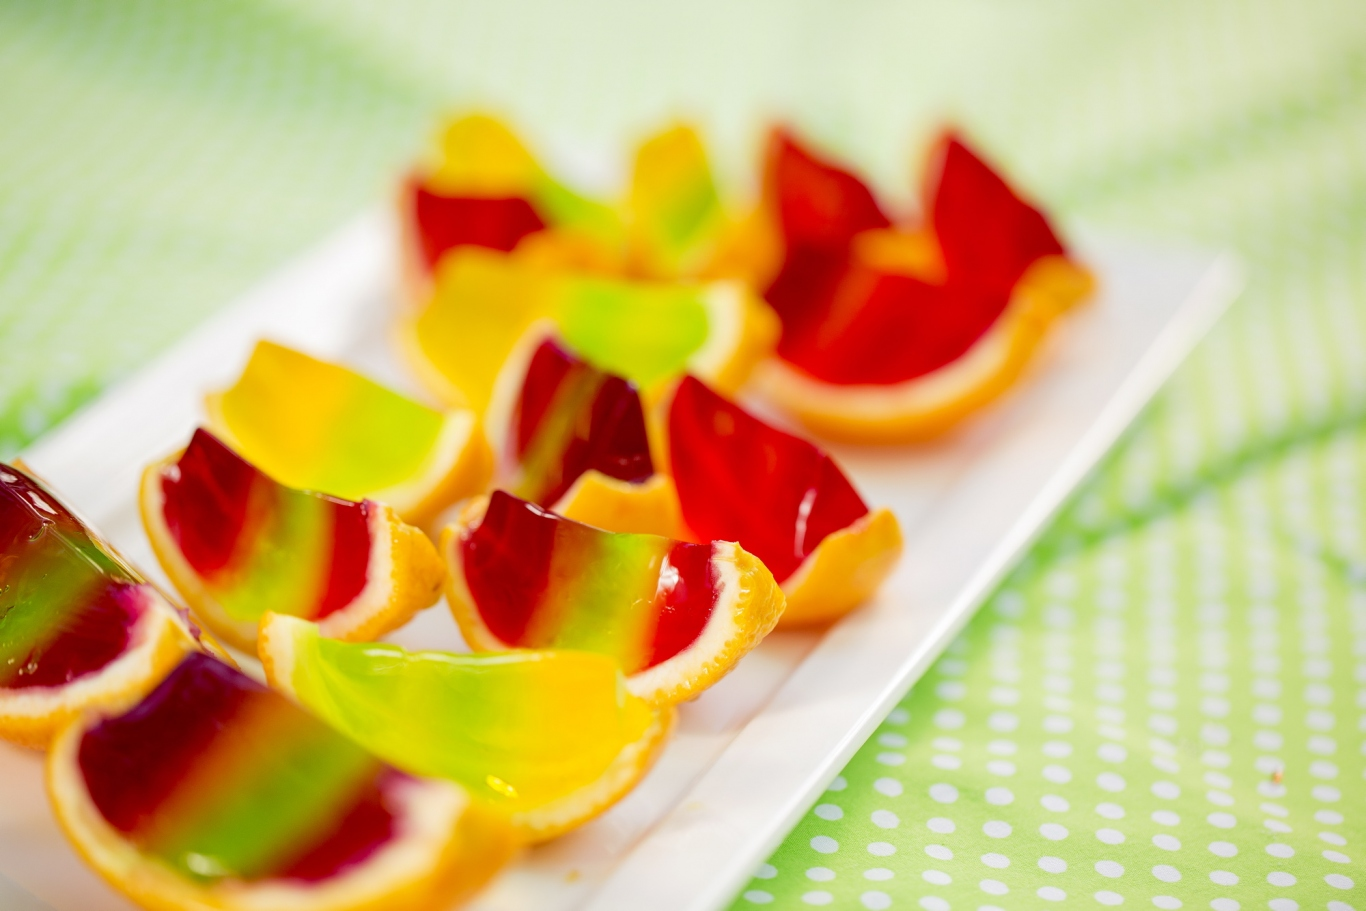 Colourful selection of jellied orange segments on table.